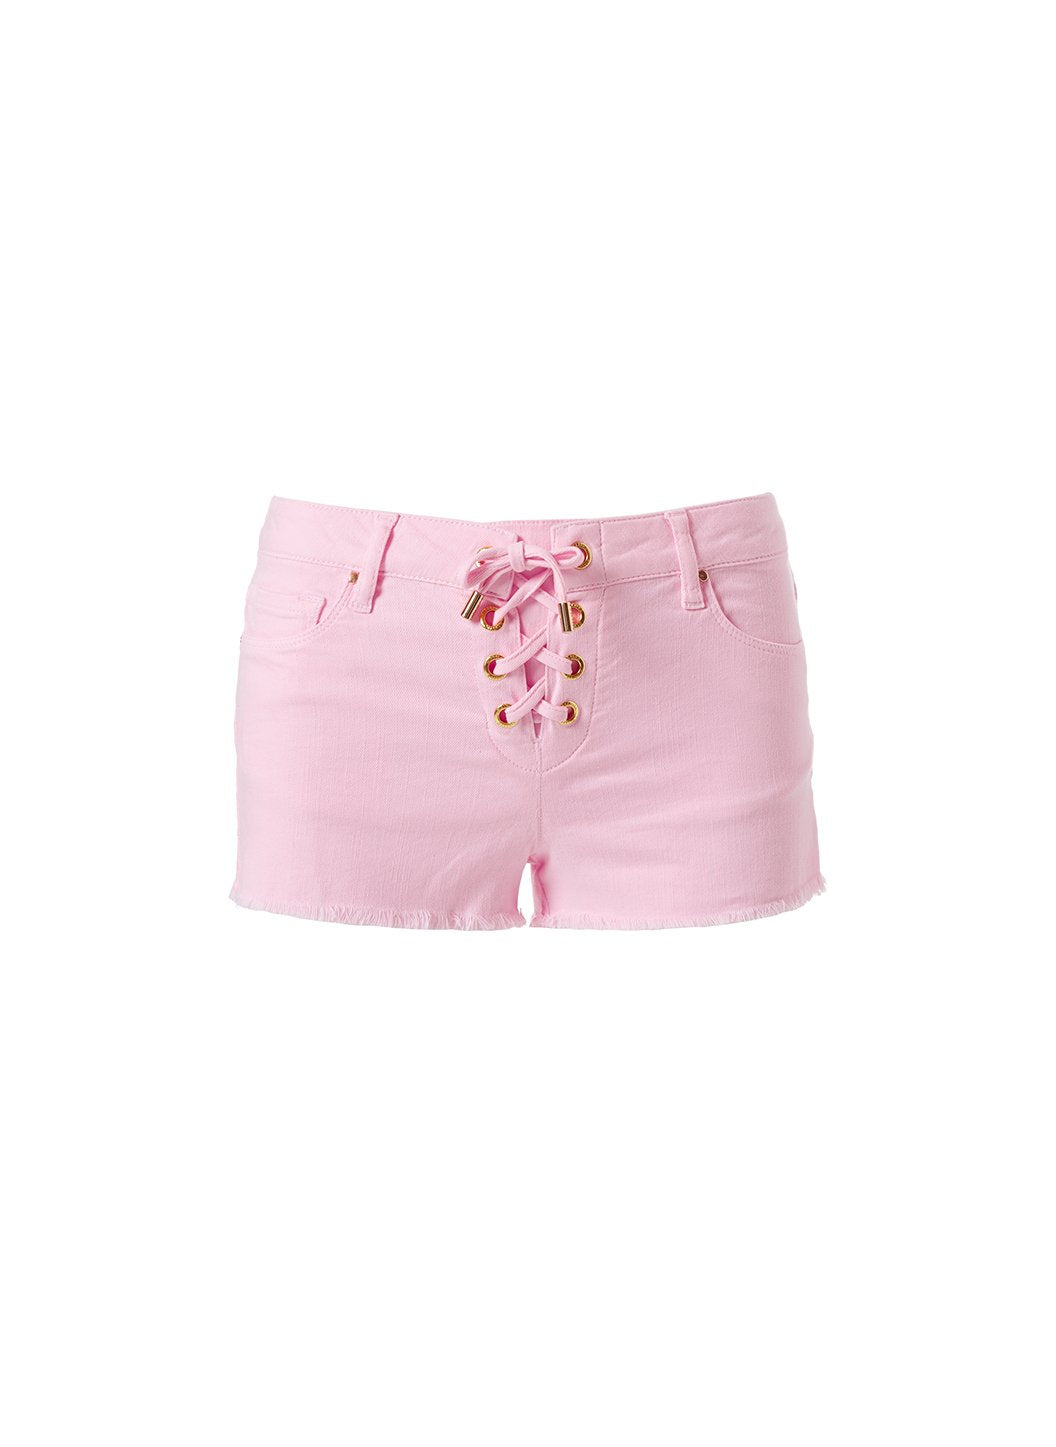 Alexi Blush Shorts Cutout